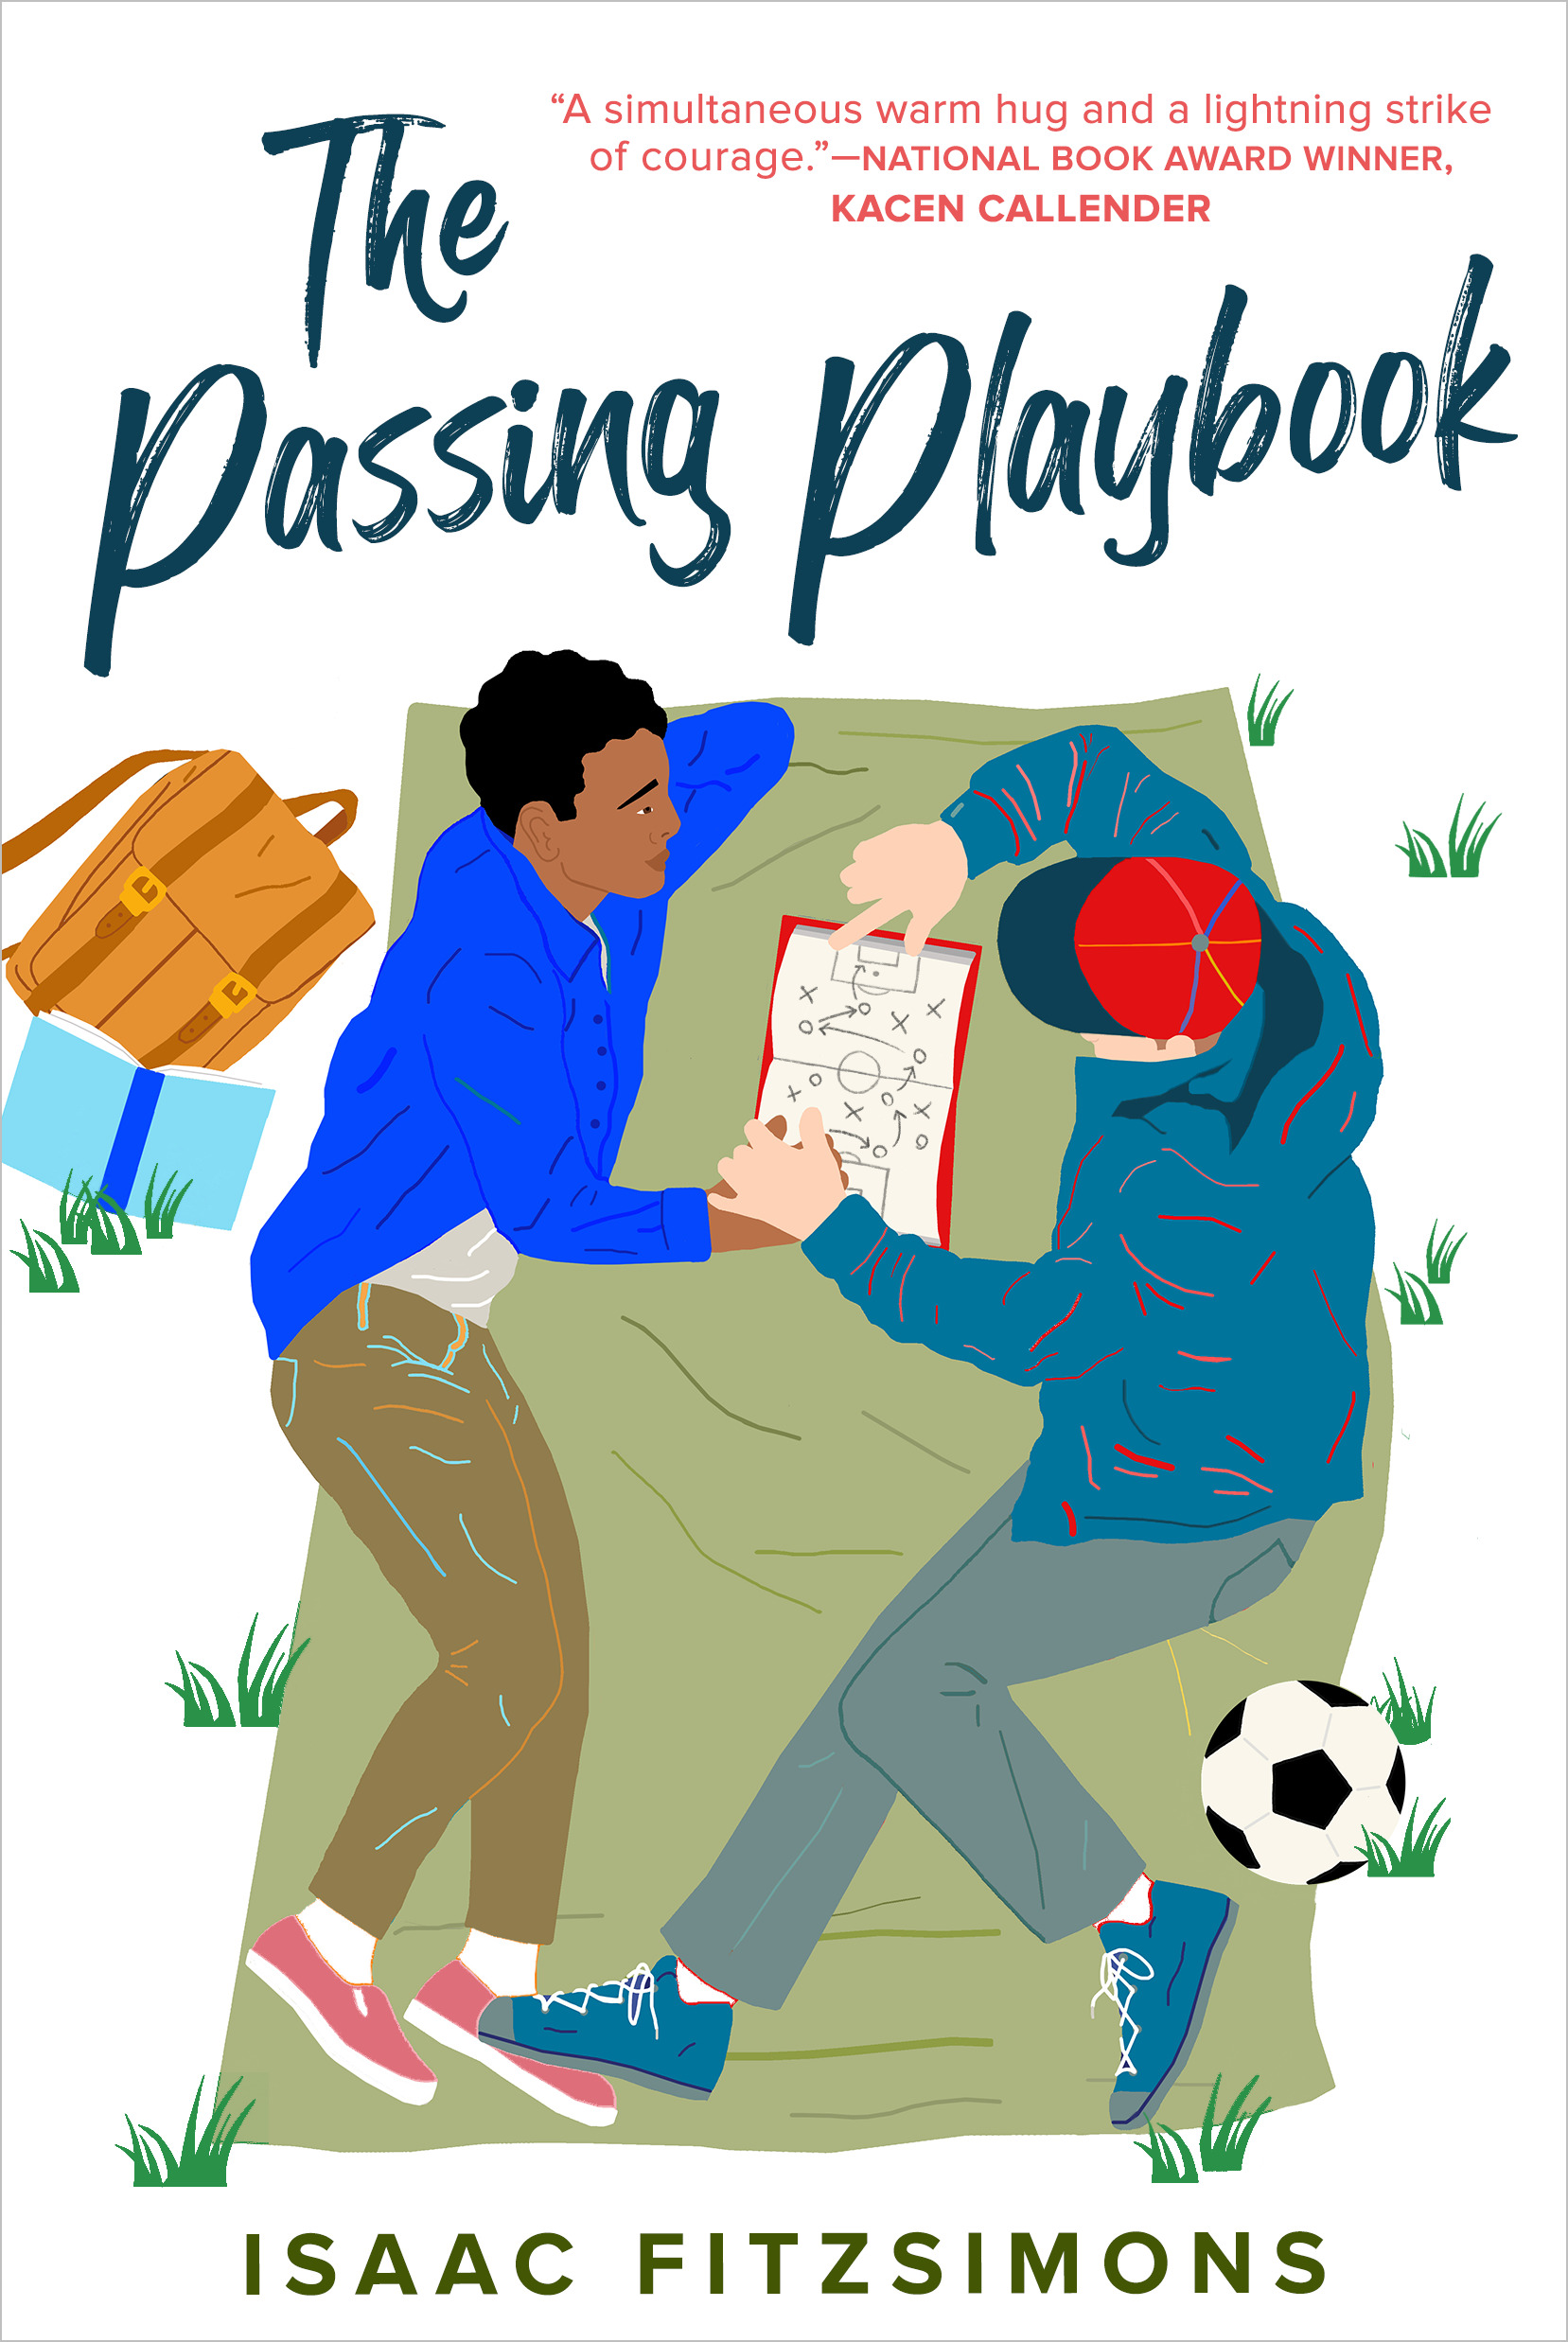 The cover of The Passing Playbook by Isaac Fitzsimons